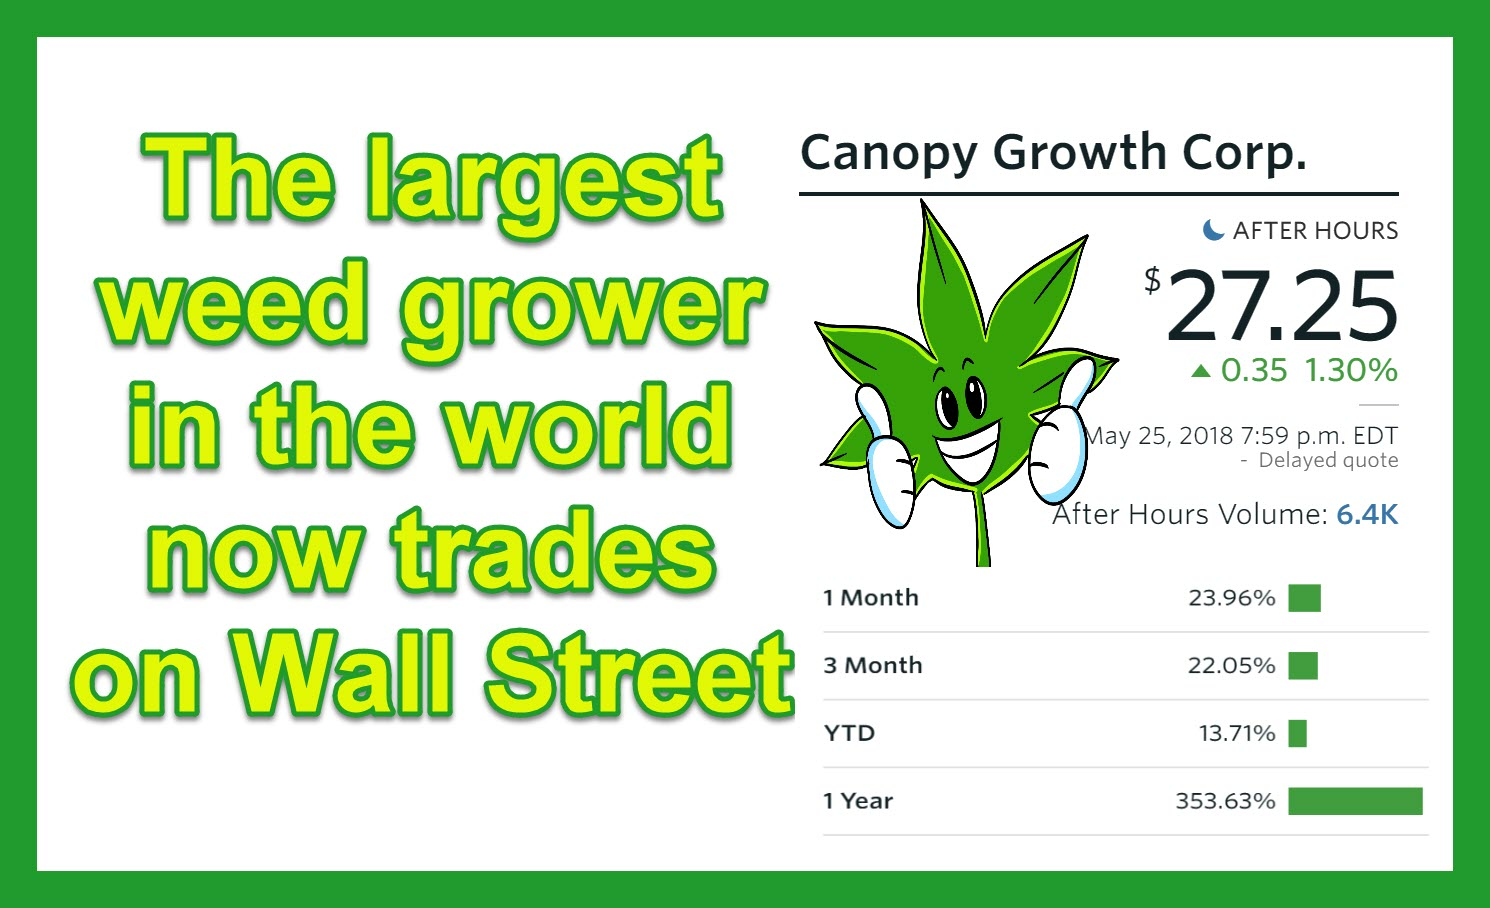 Canadian Cannabis Firm Canopy Growth Makes Debut On Wall